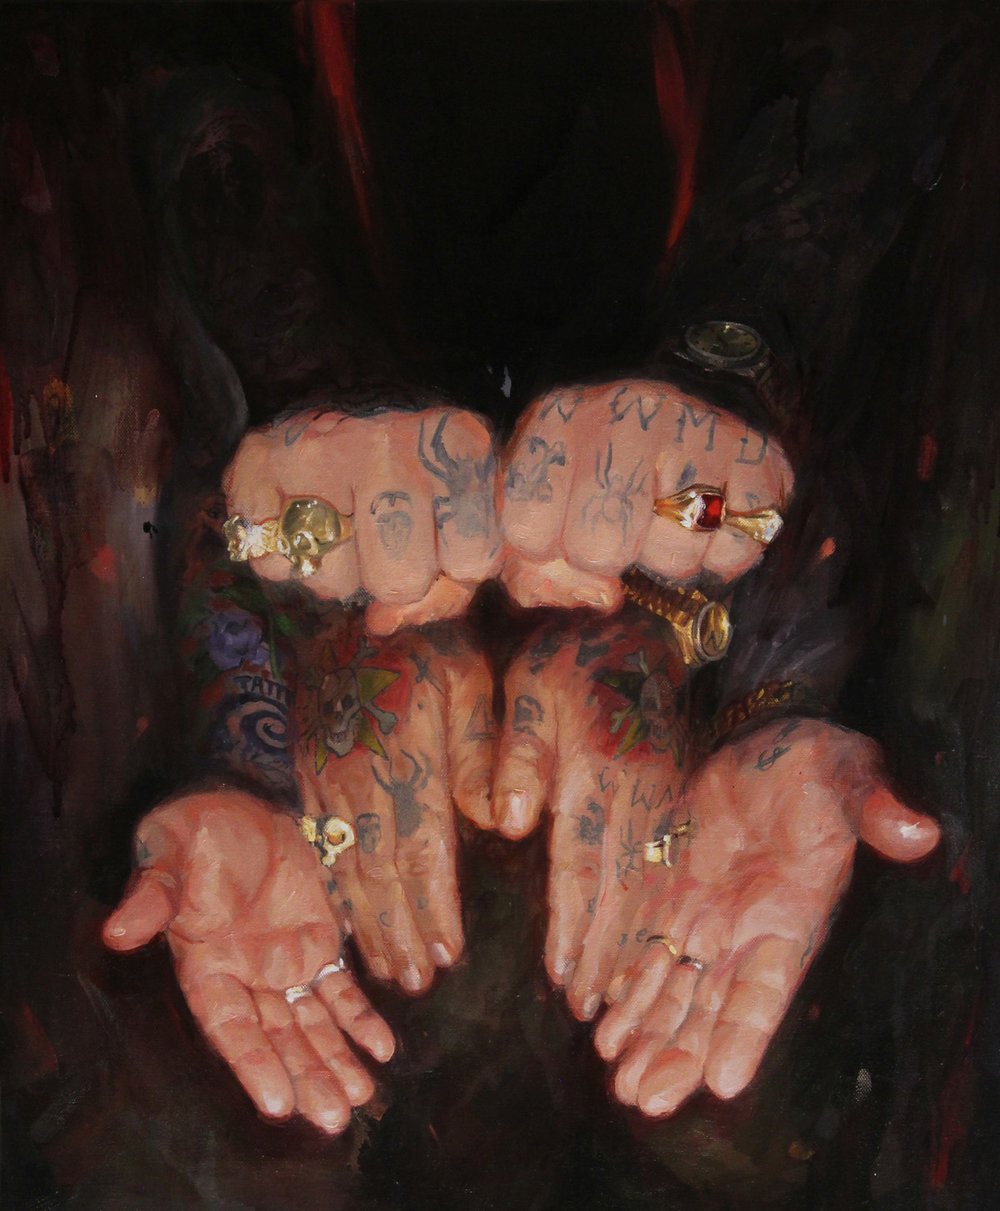 "'Gill Montie's Hand', oil on canvas, 24"" x 20"", 2016"